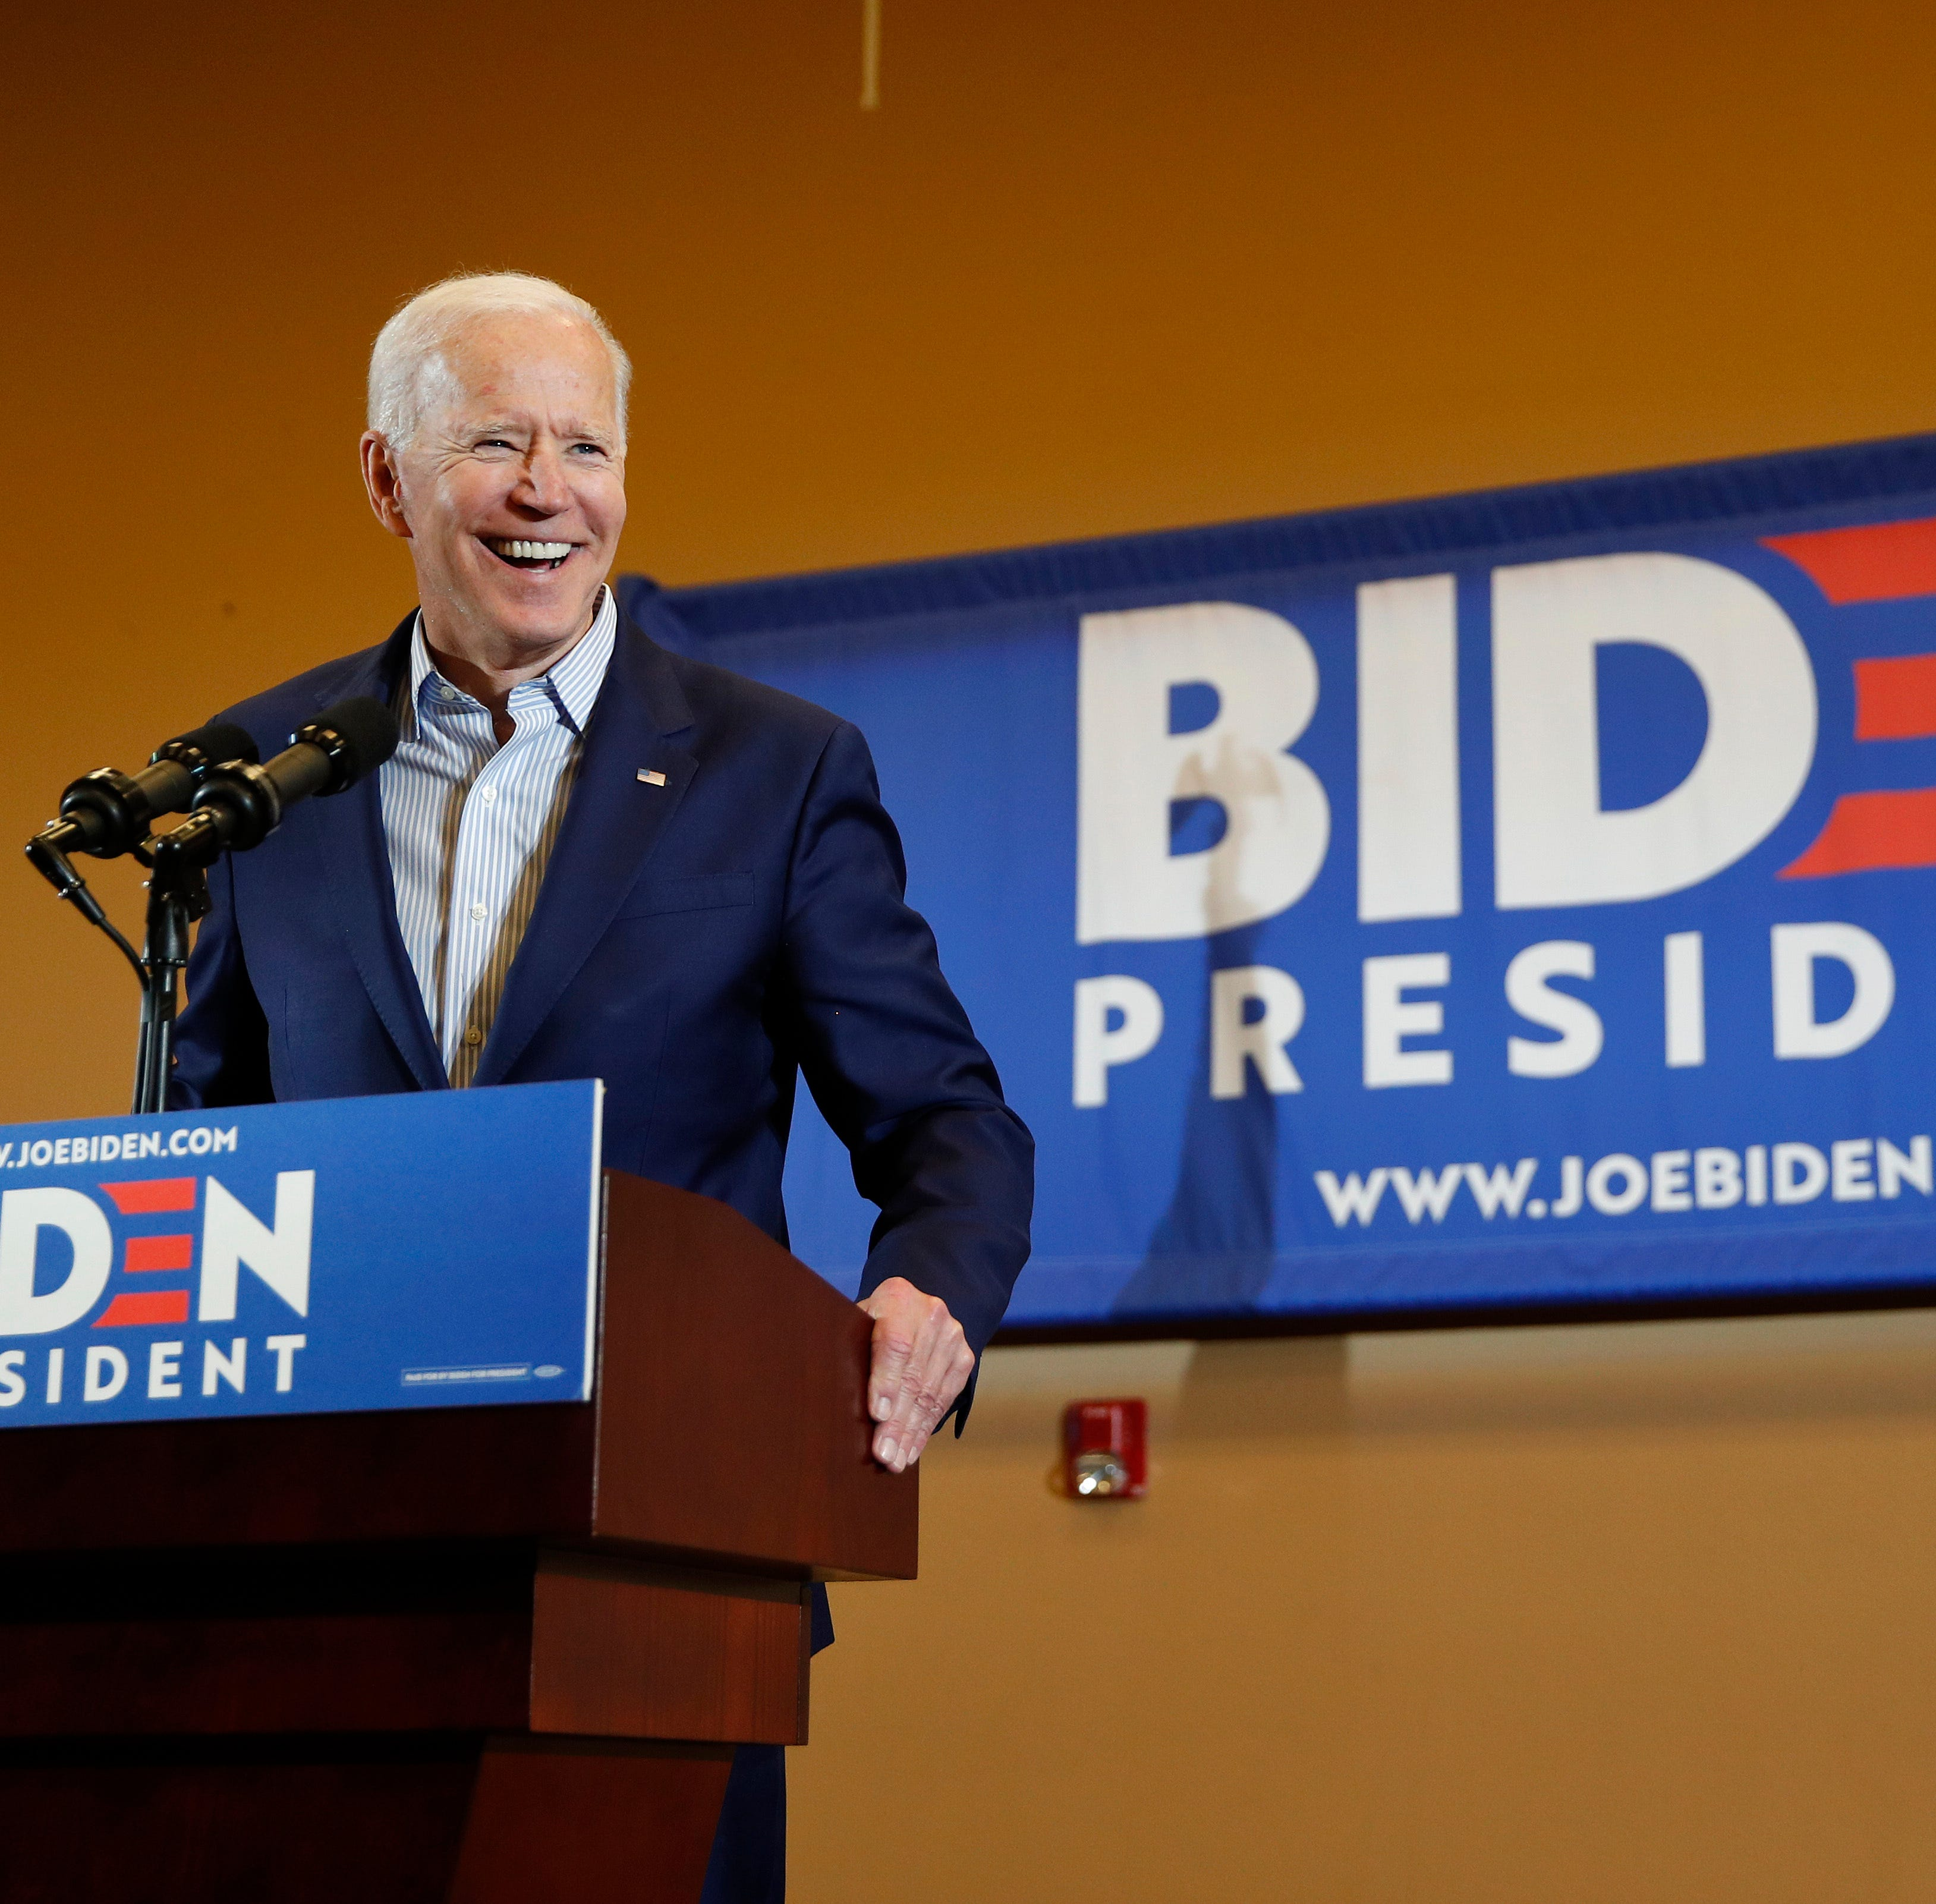 Biden clears path for campaign staff to organize union